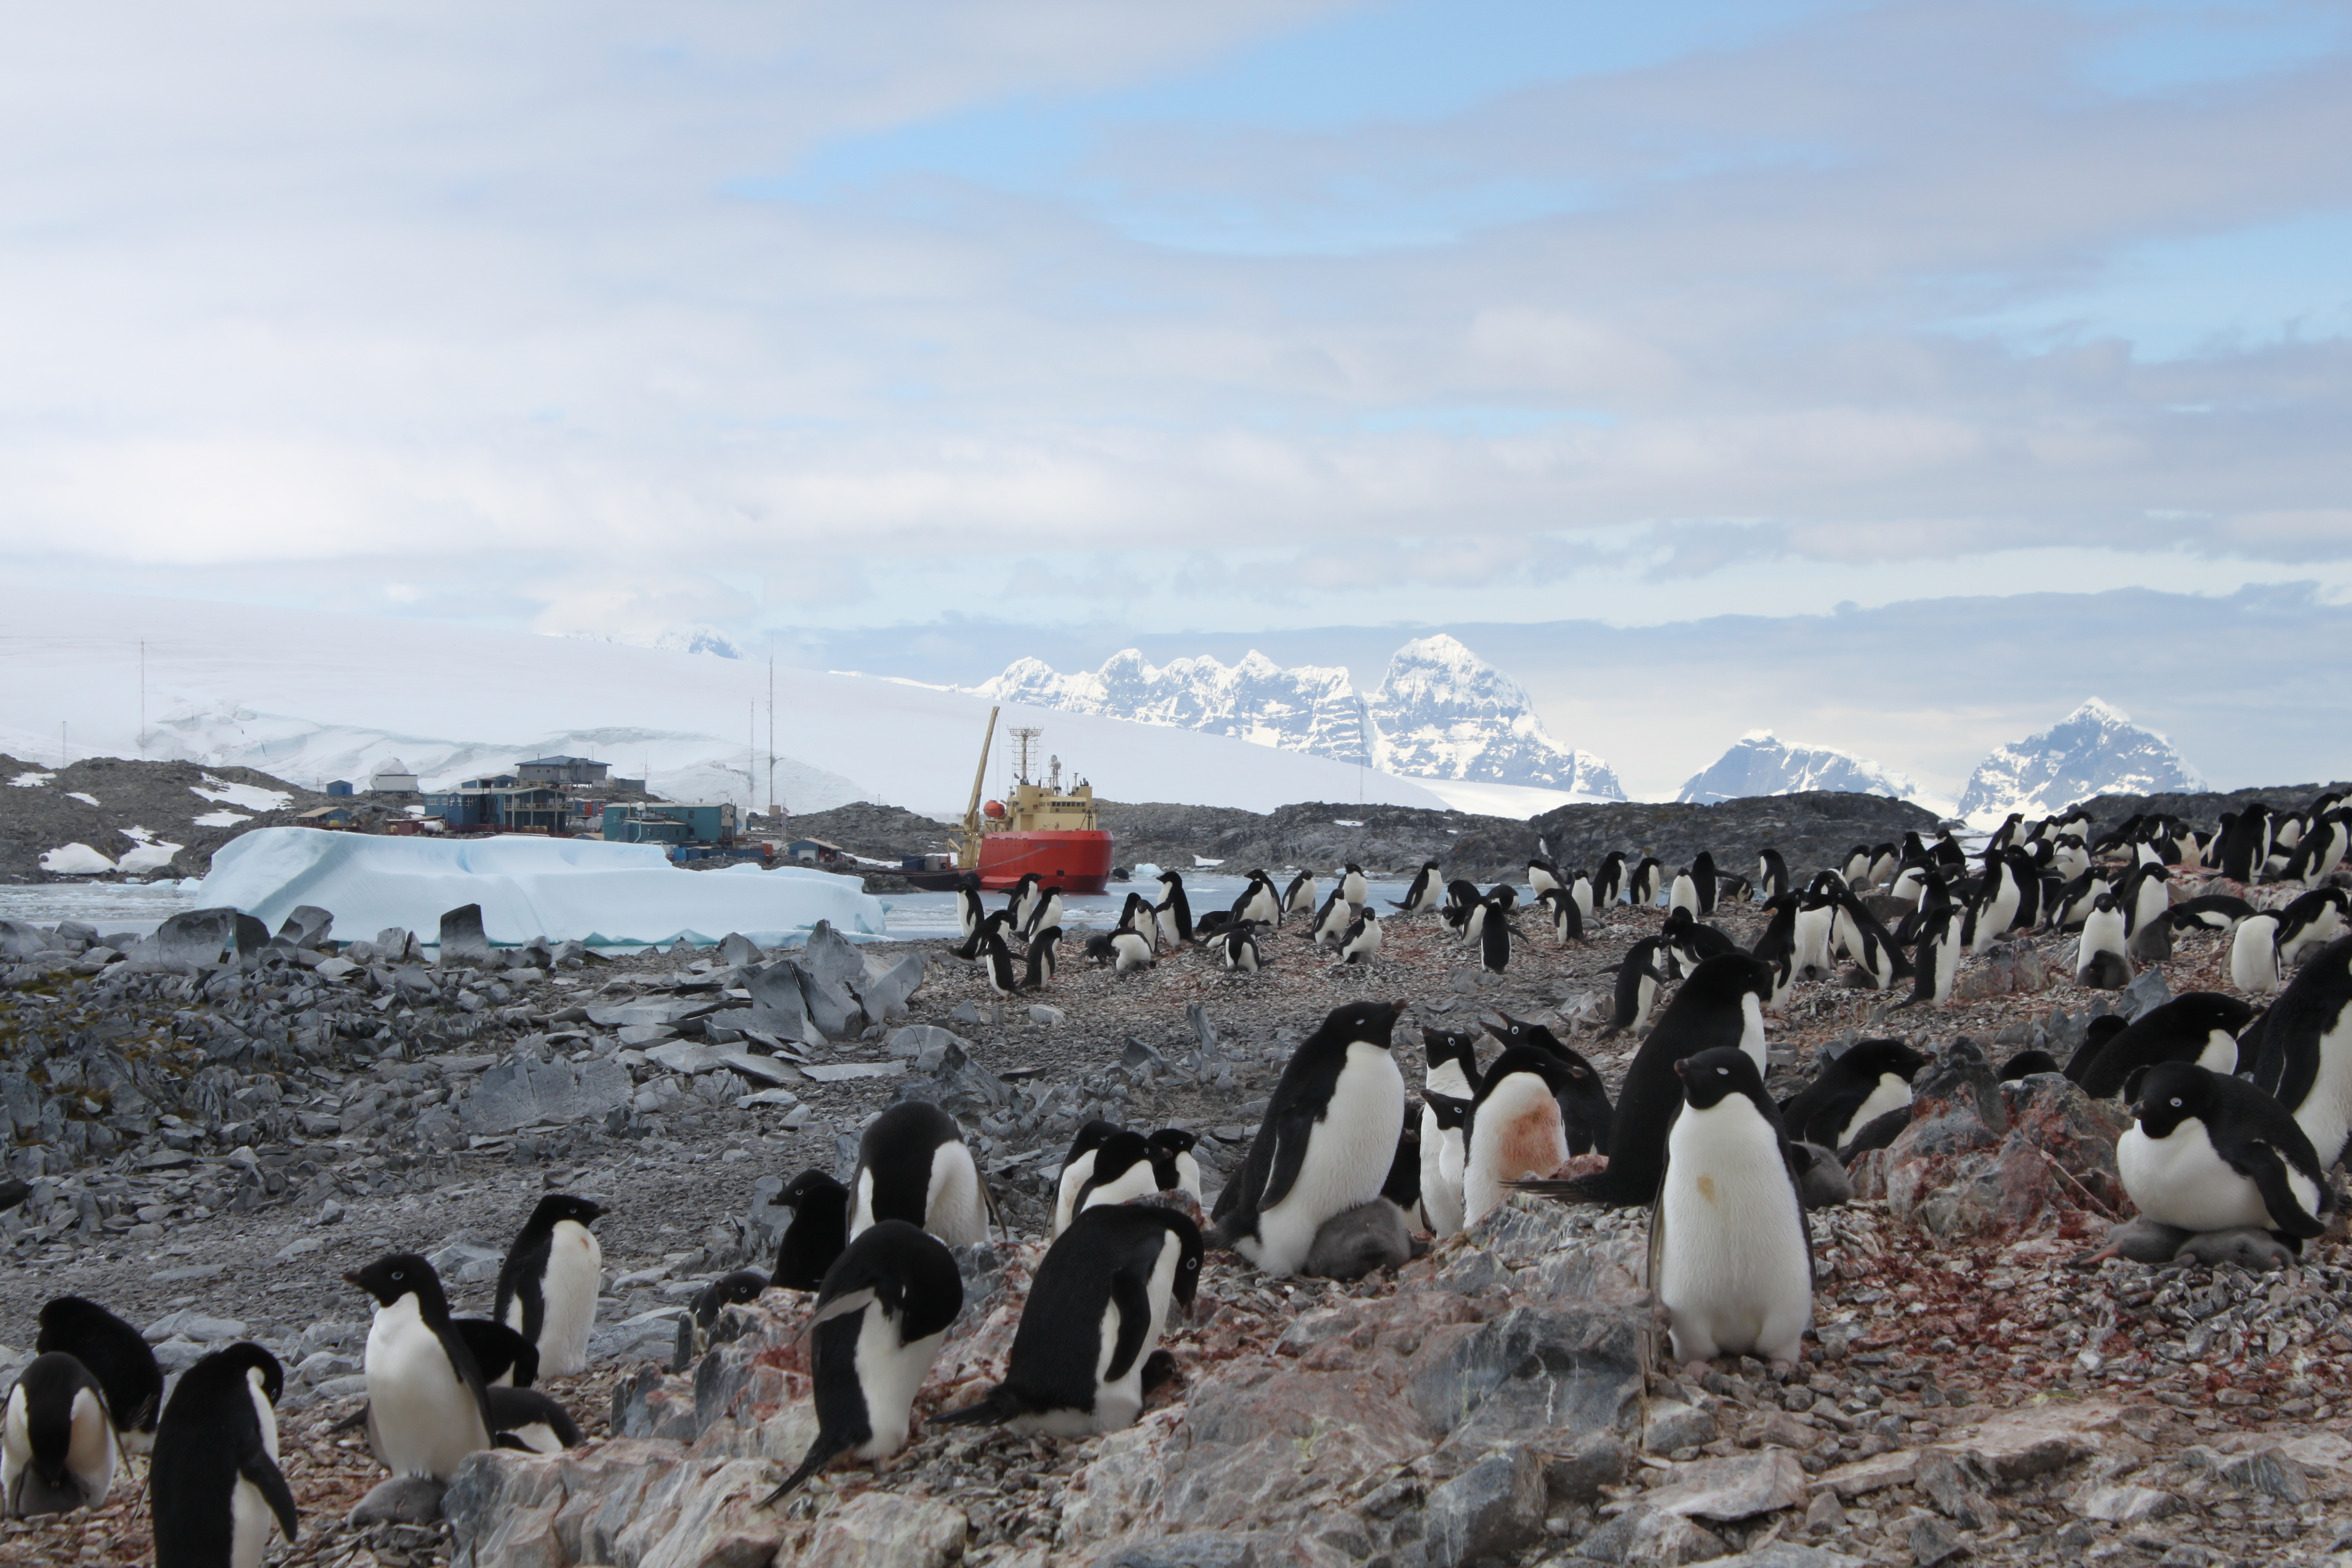 Adelie penguins at the Palmer Research Station.